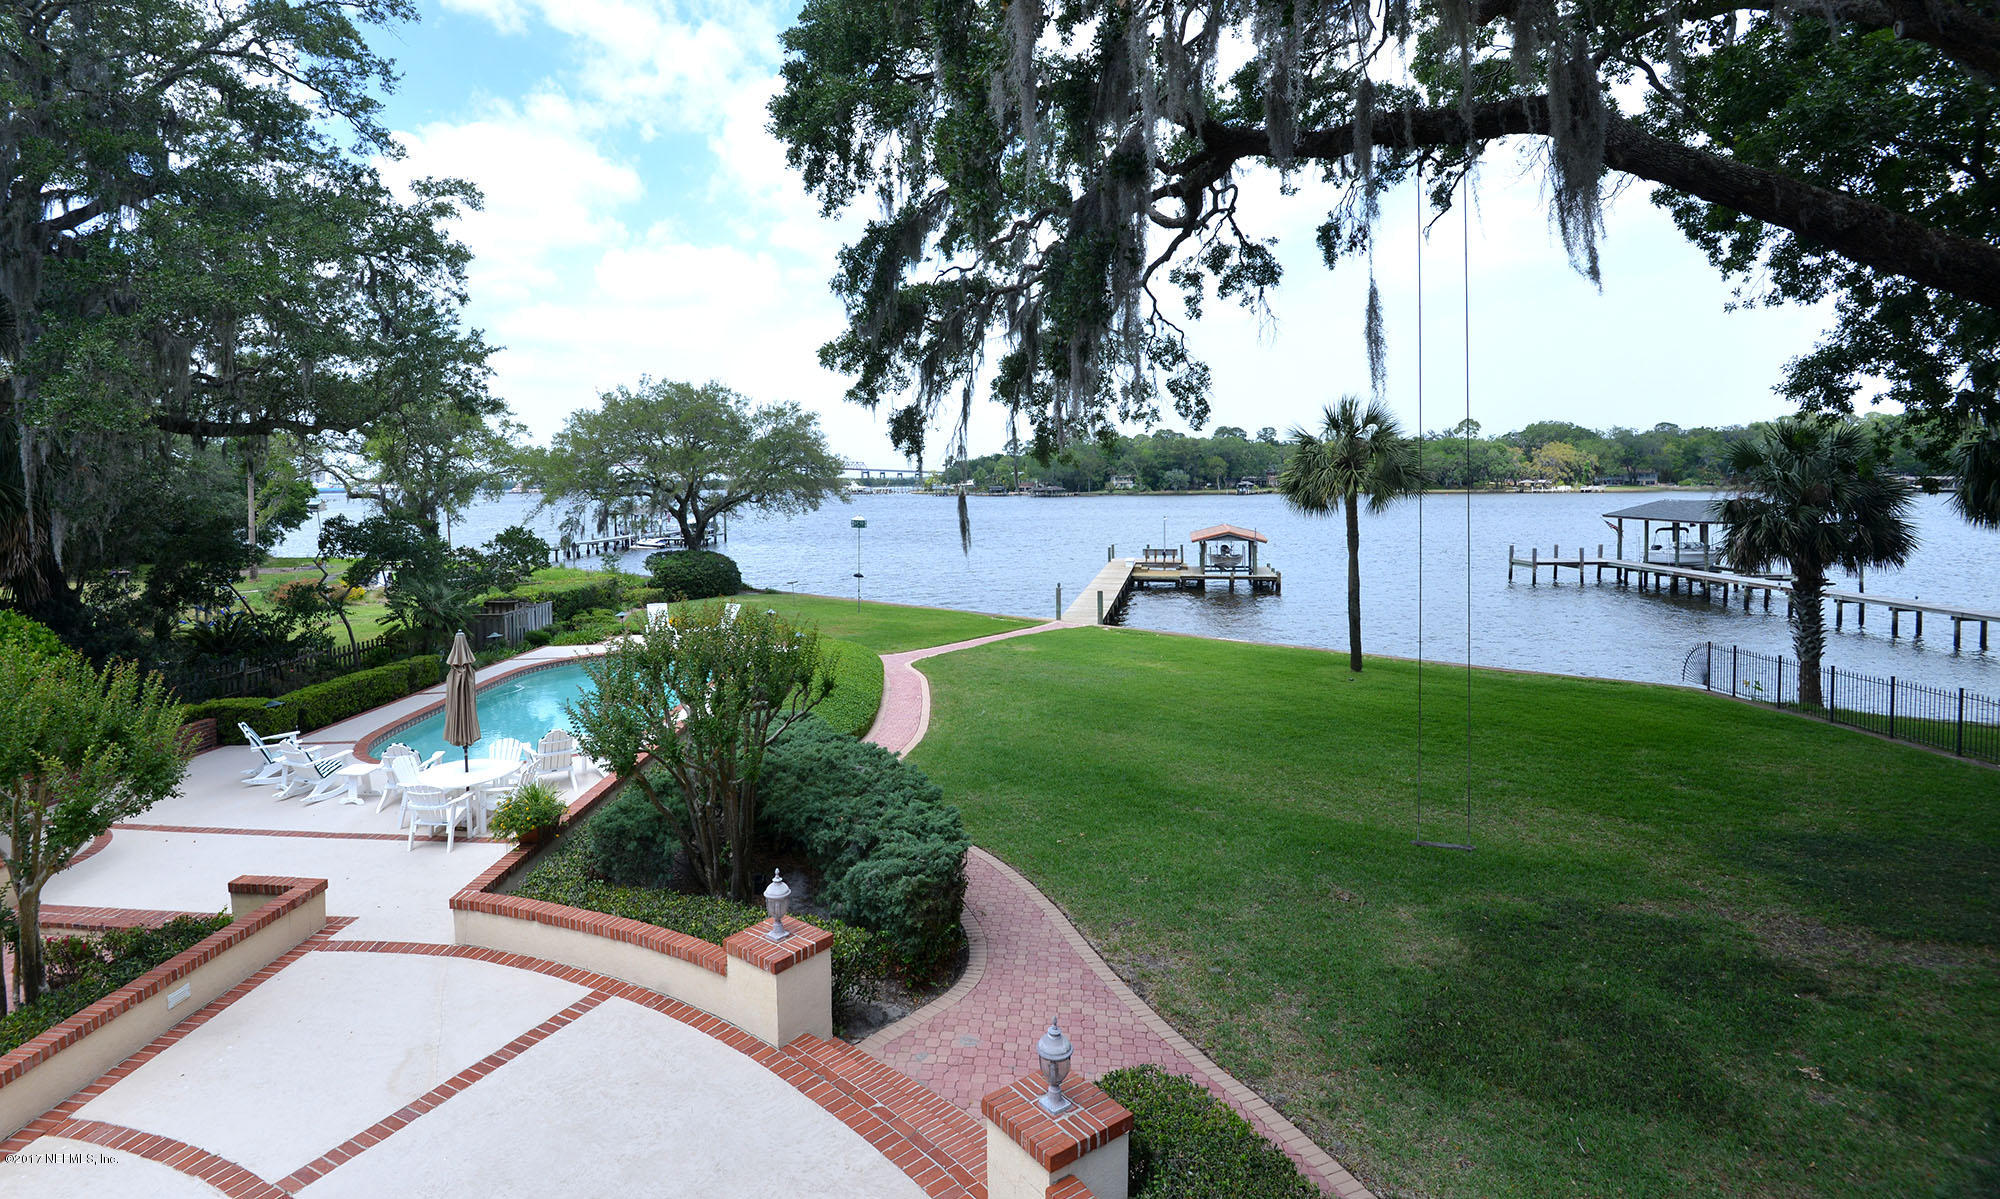 1145 CAMPBELL, JACKSONVILLE, FLORIDA 32207, 7 Bedrooms Bedrooms, ,6 BathroomsBathrooms,Residential - single family,For sale,CAMPBELL,879664